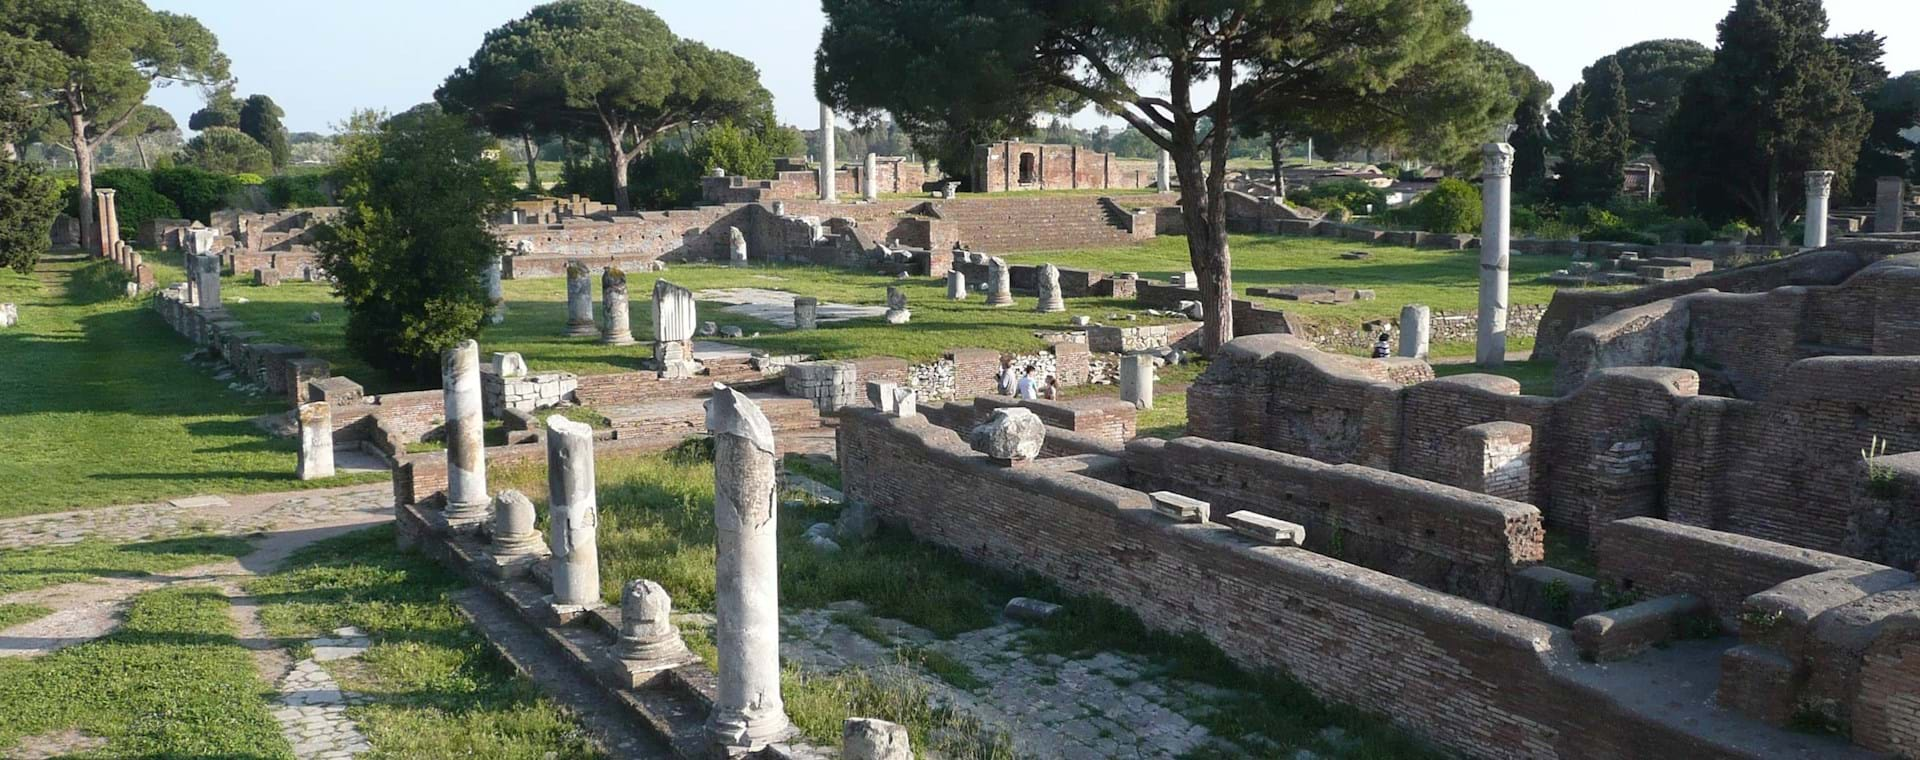 Half-Day Ostia Antica Tour: Rome's Secret, Well-Preserved Roman Ruins